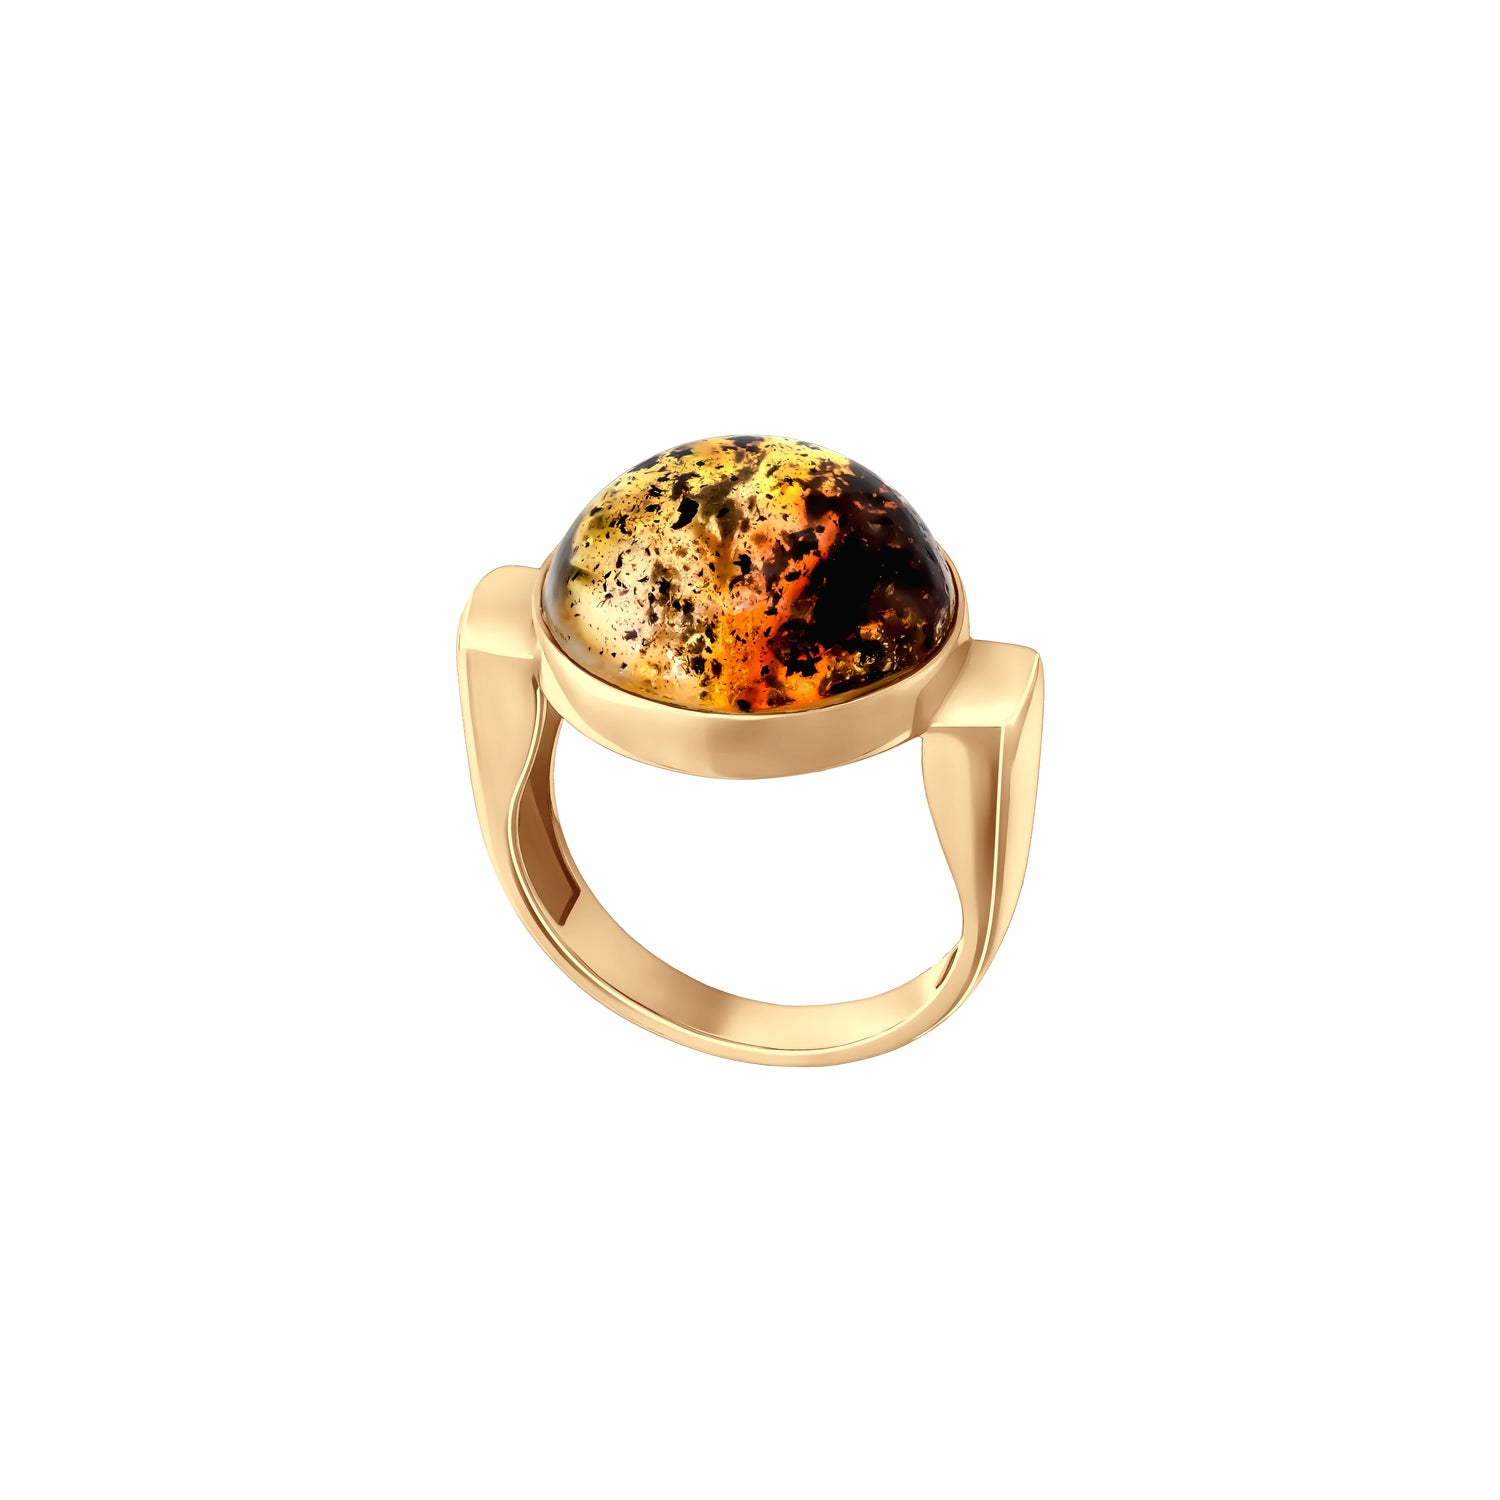 Modernism Gold Plated Silver Ring with Inclusions Inside Amber